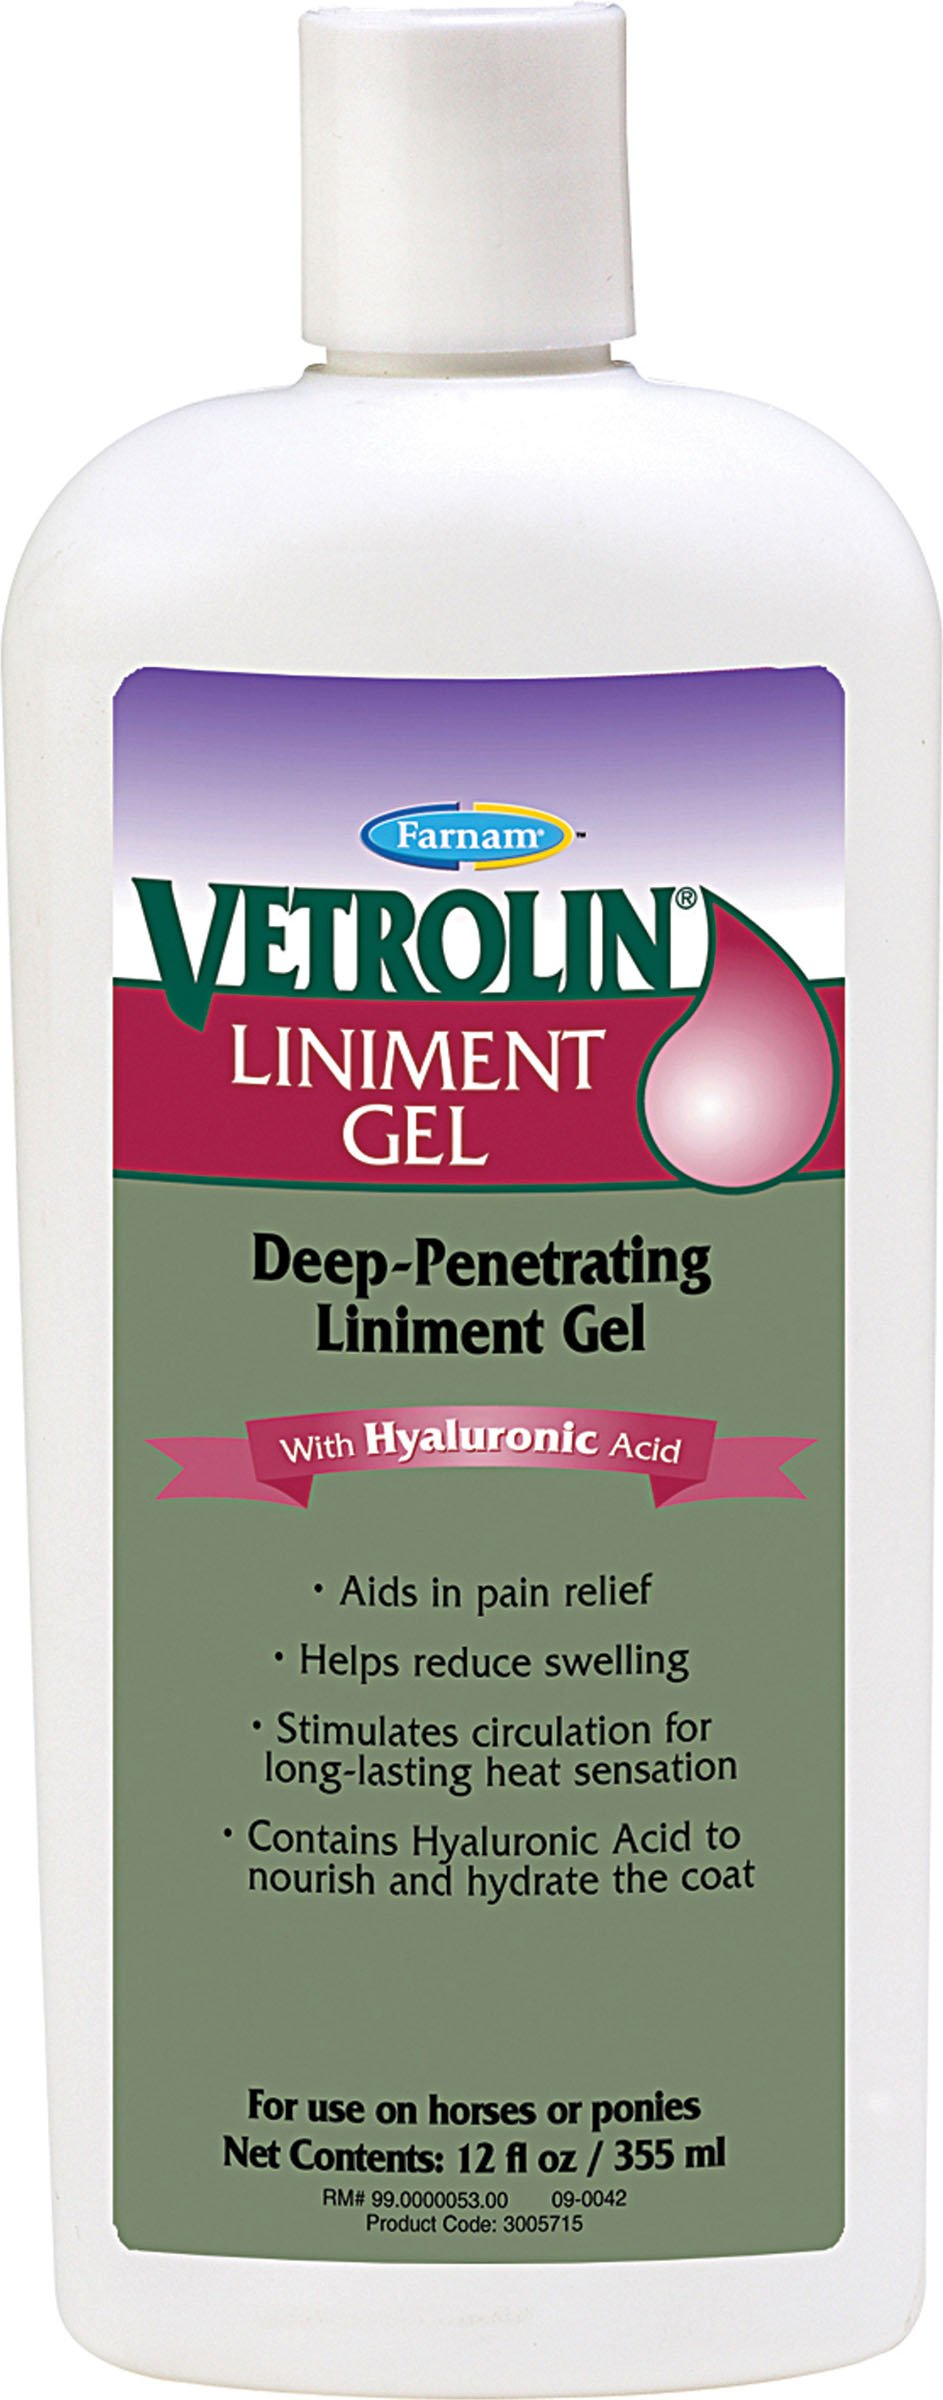 Vetrolin Liniment Gel - 12 oz by Vetrolin